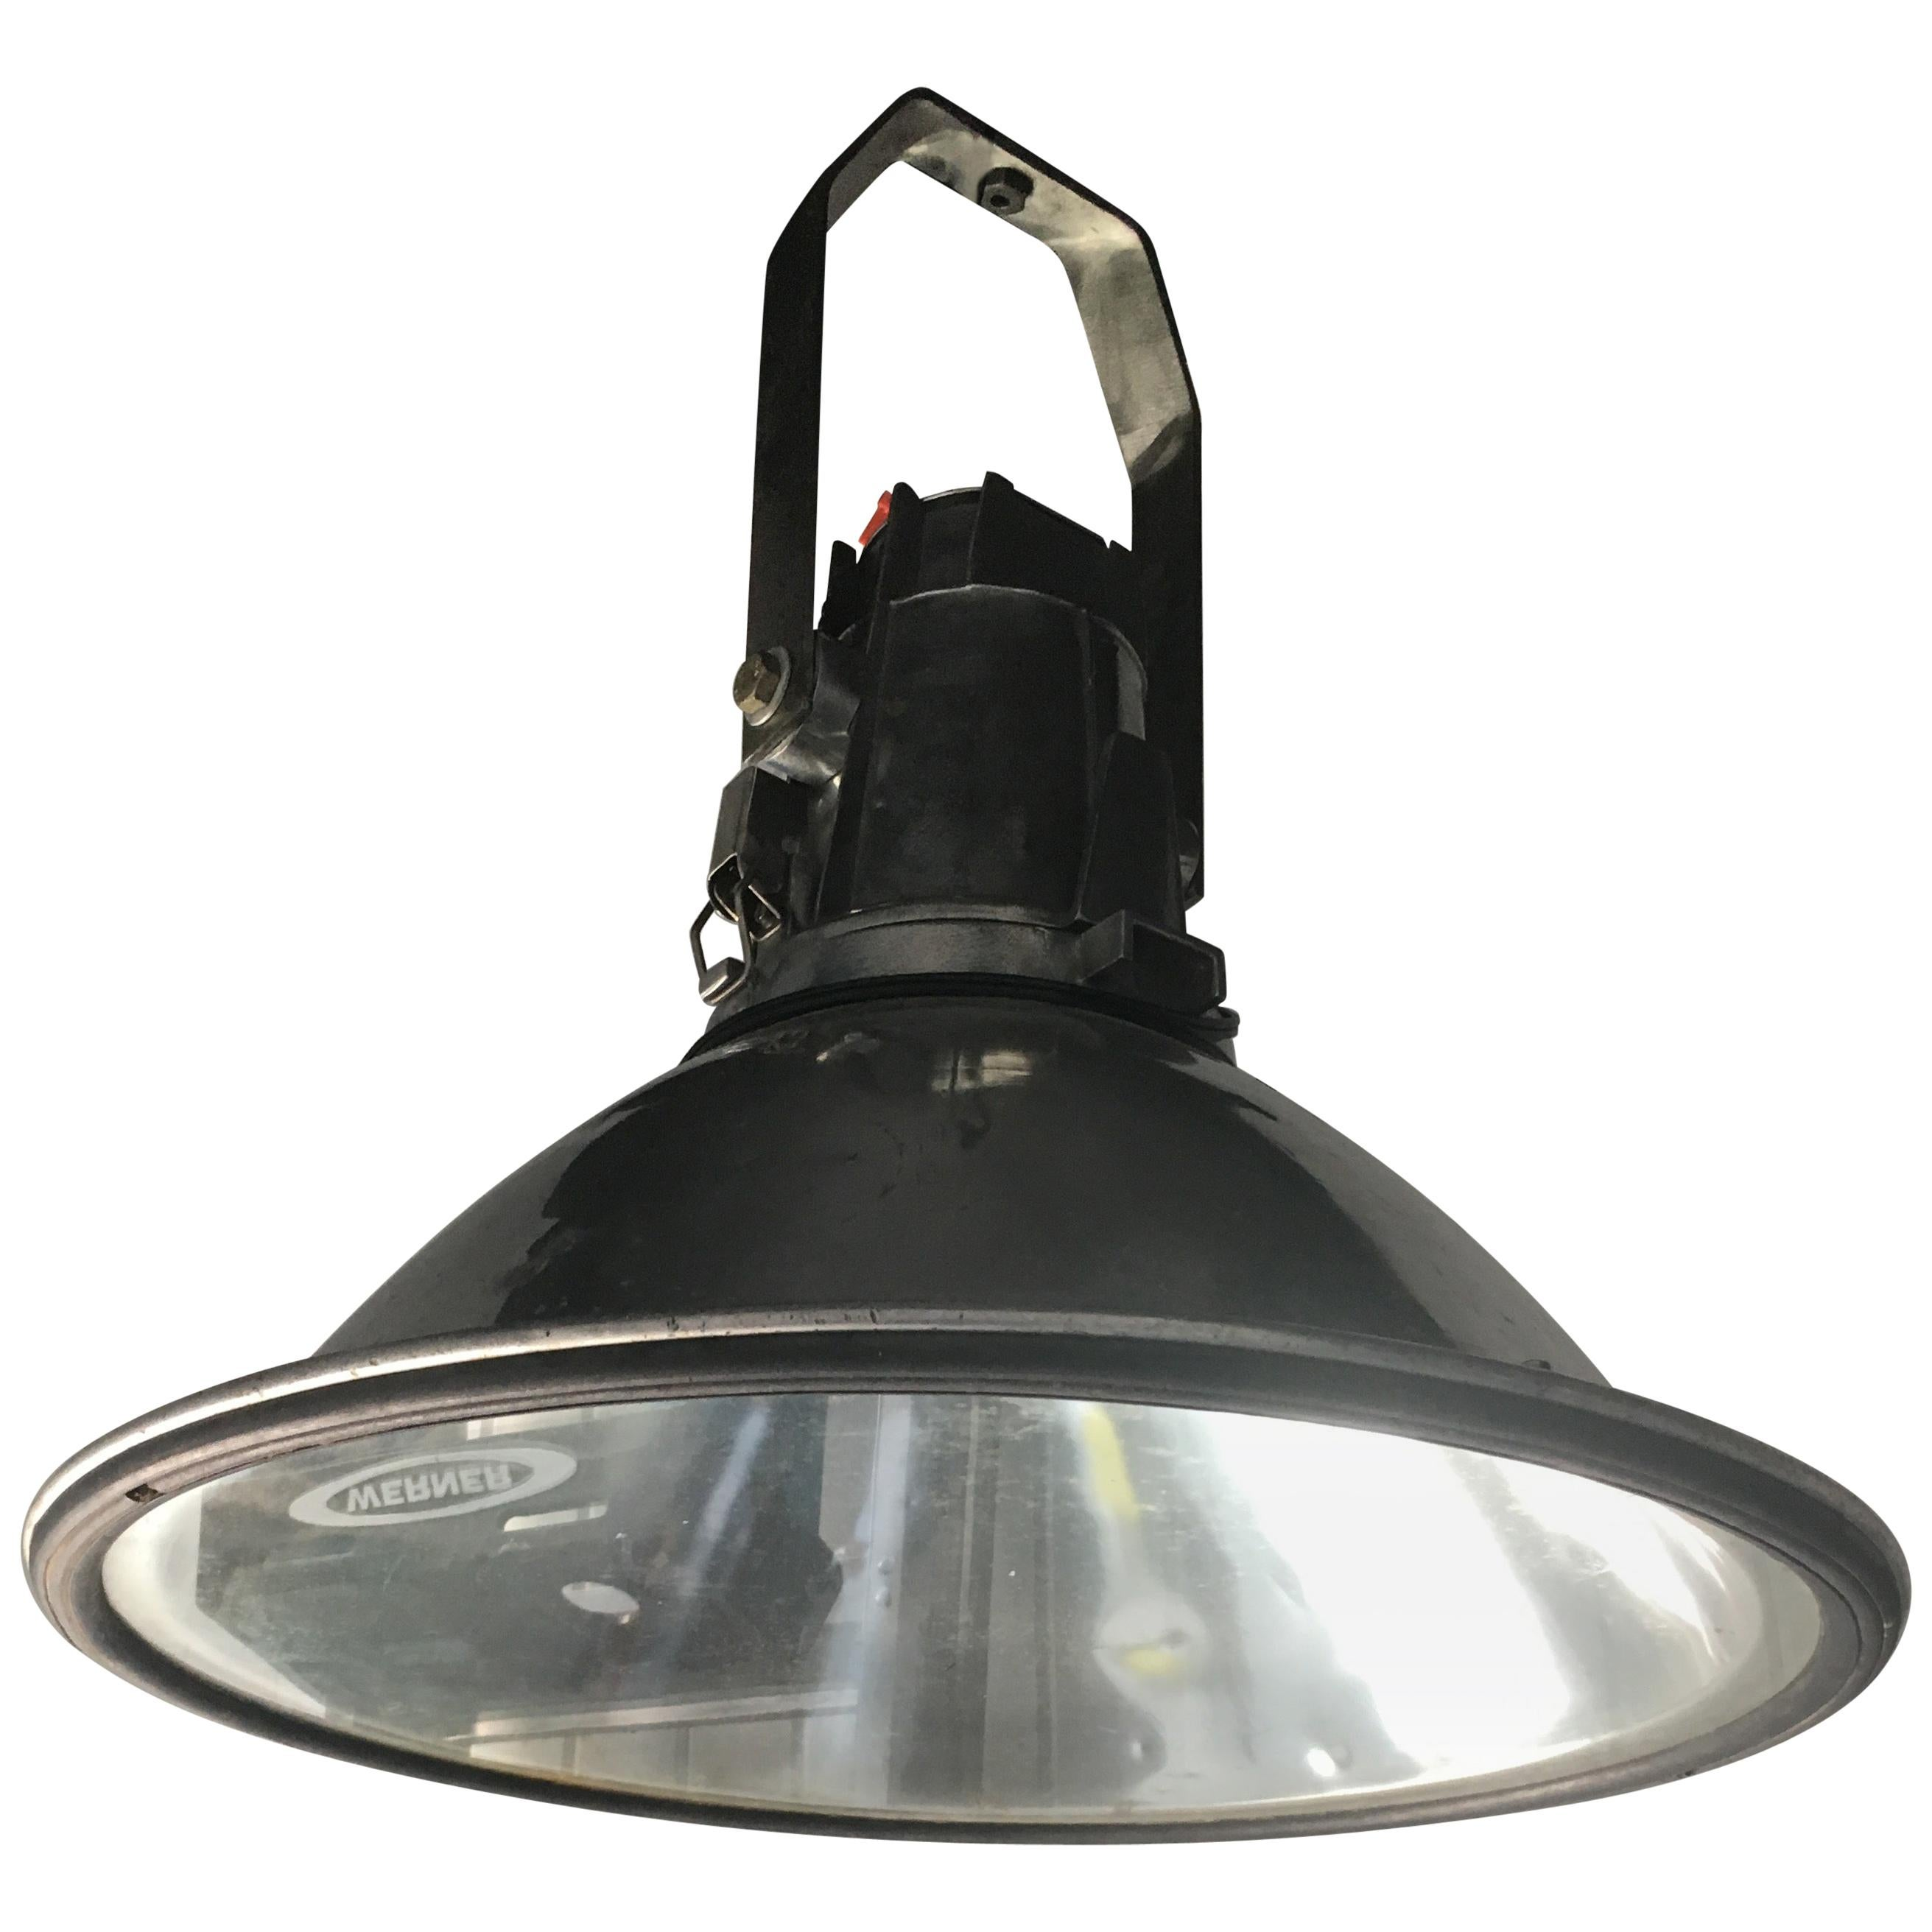 One Pair of Industrial Spot Lights, Great for above an Island or Farm Table